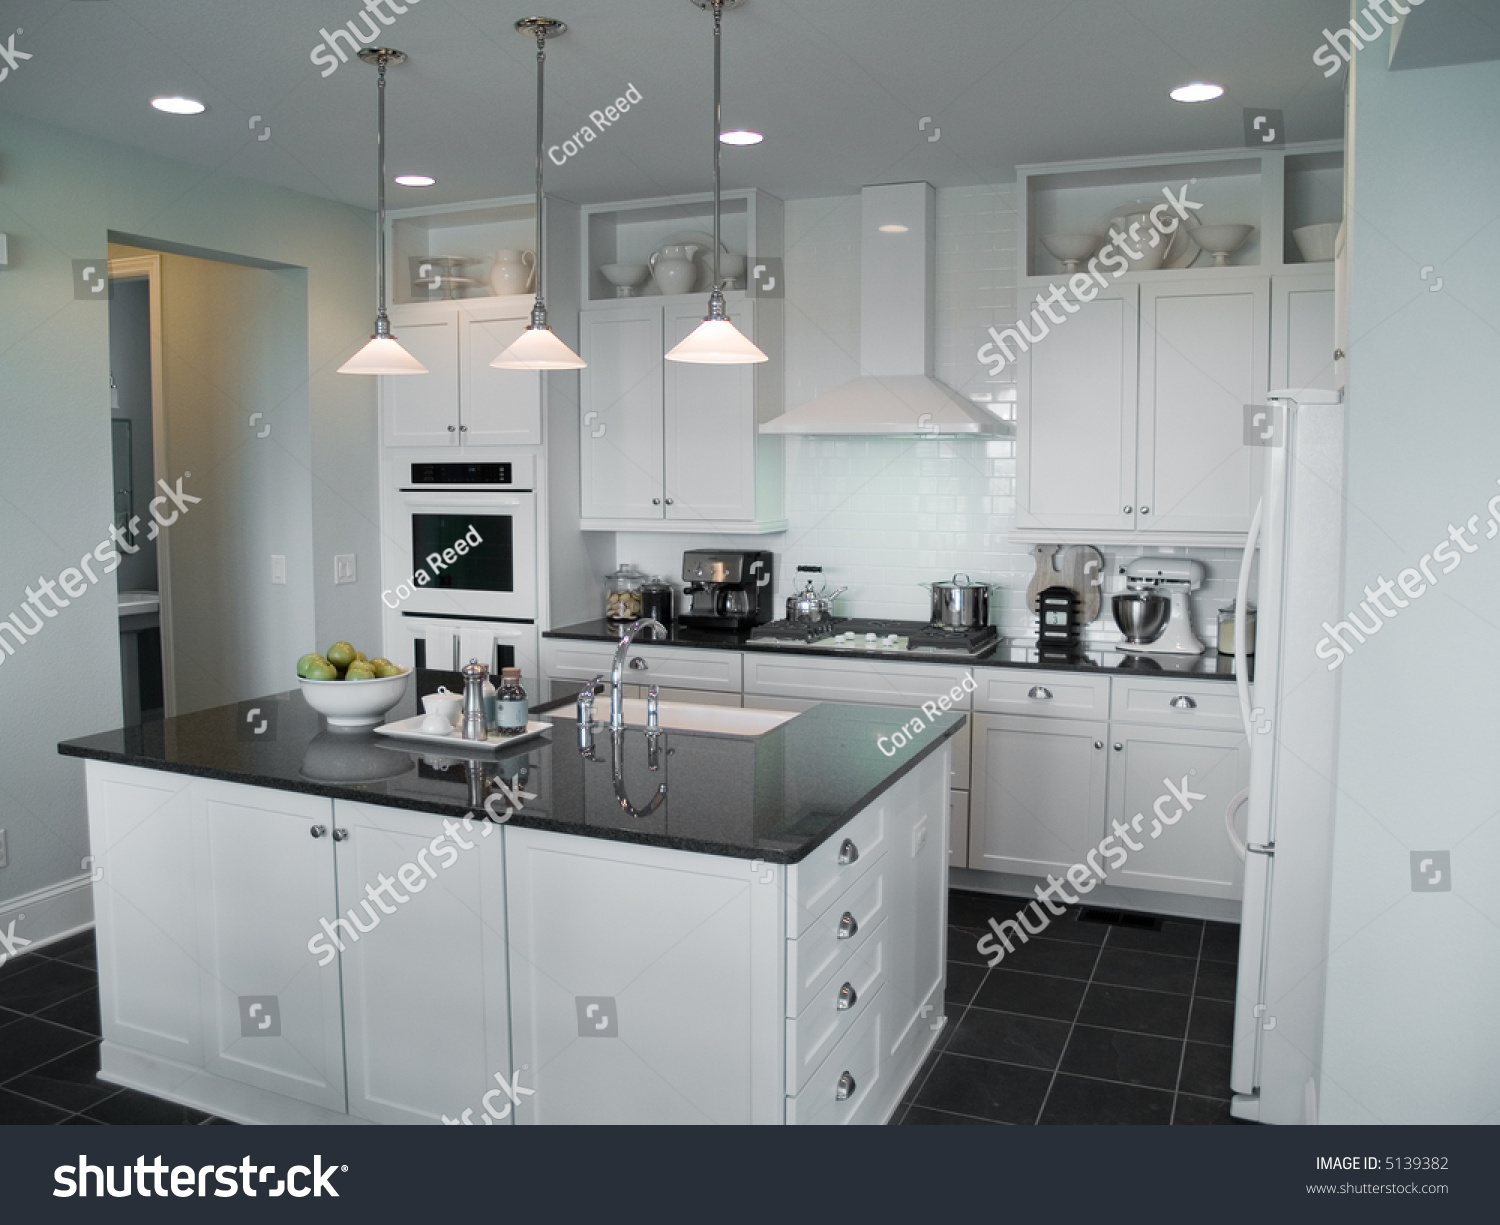 Beautiful modern kitchen center island stock photo 5139382 for Beautiful modern kitchens